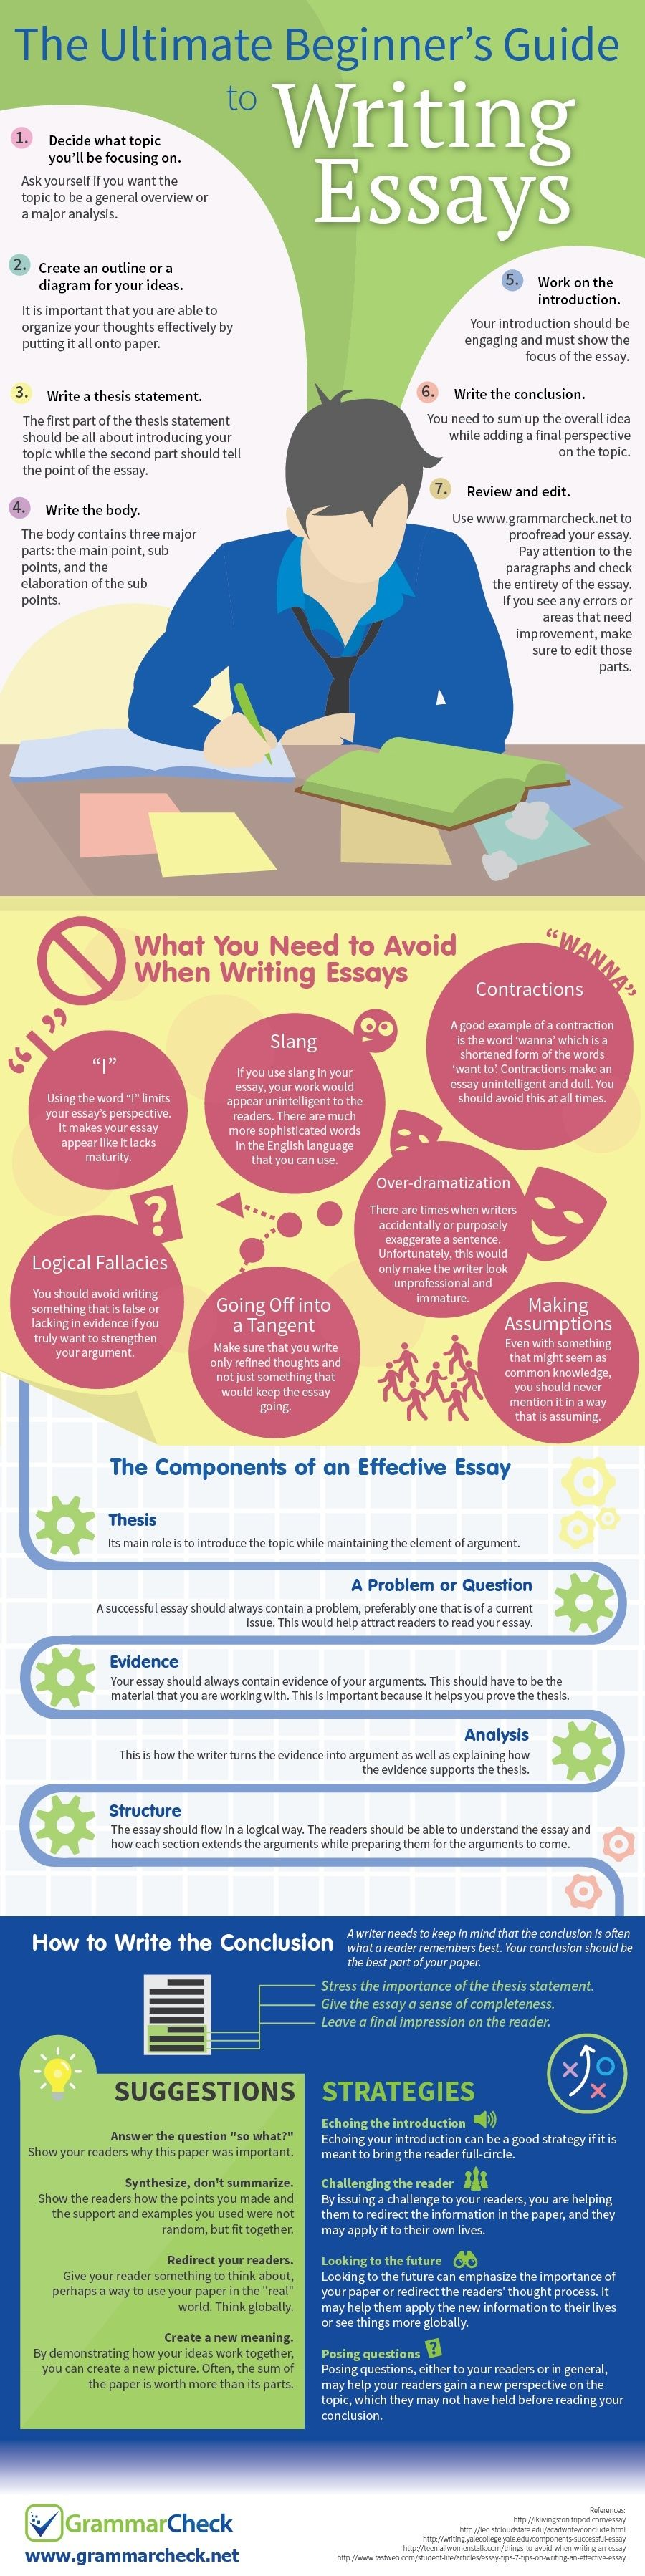 the ultimate beginner s guide to writing essays infographic educational the ultimate beginners guide to writing essays infographic